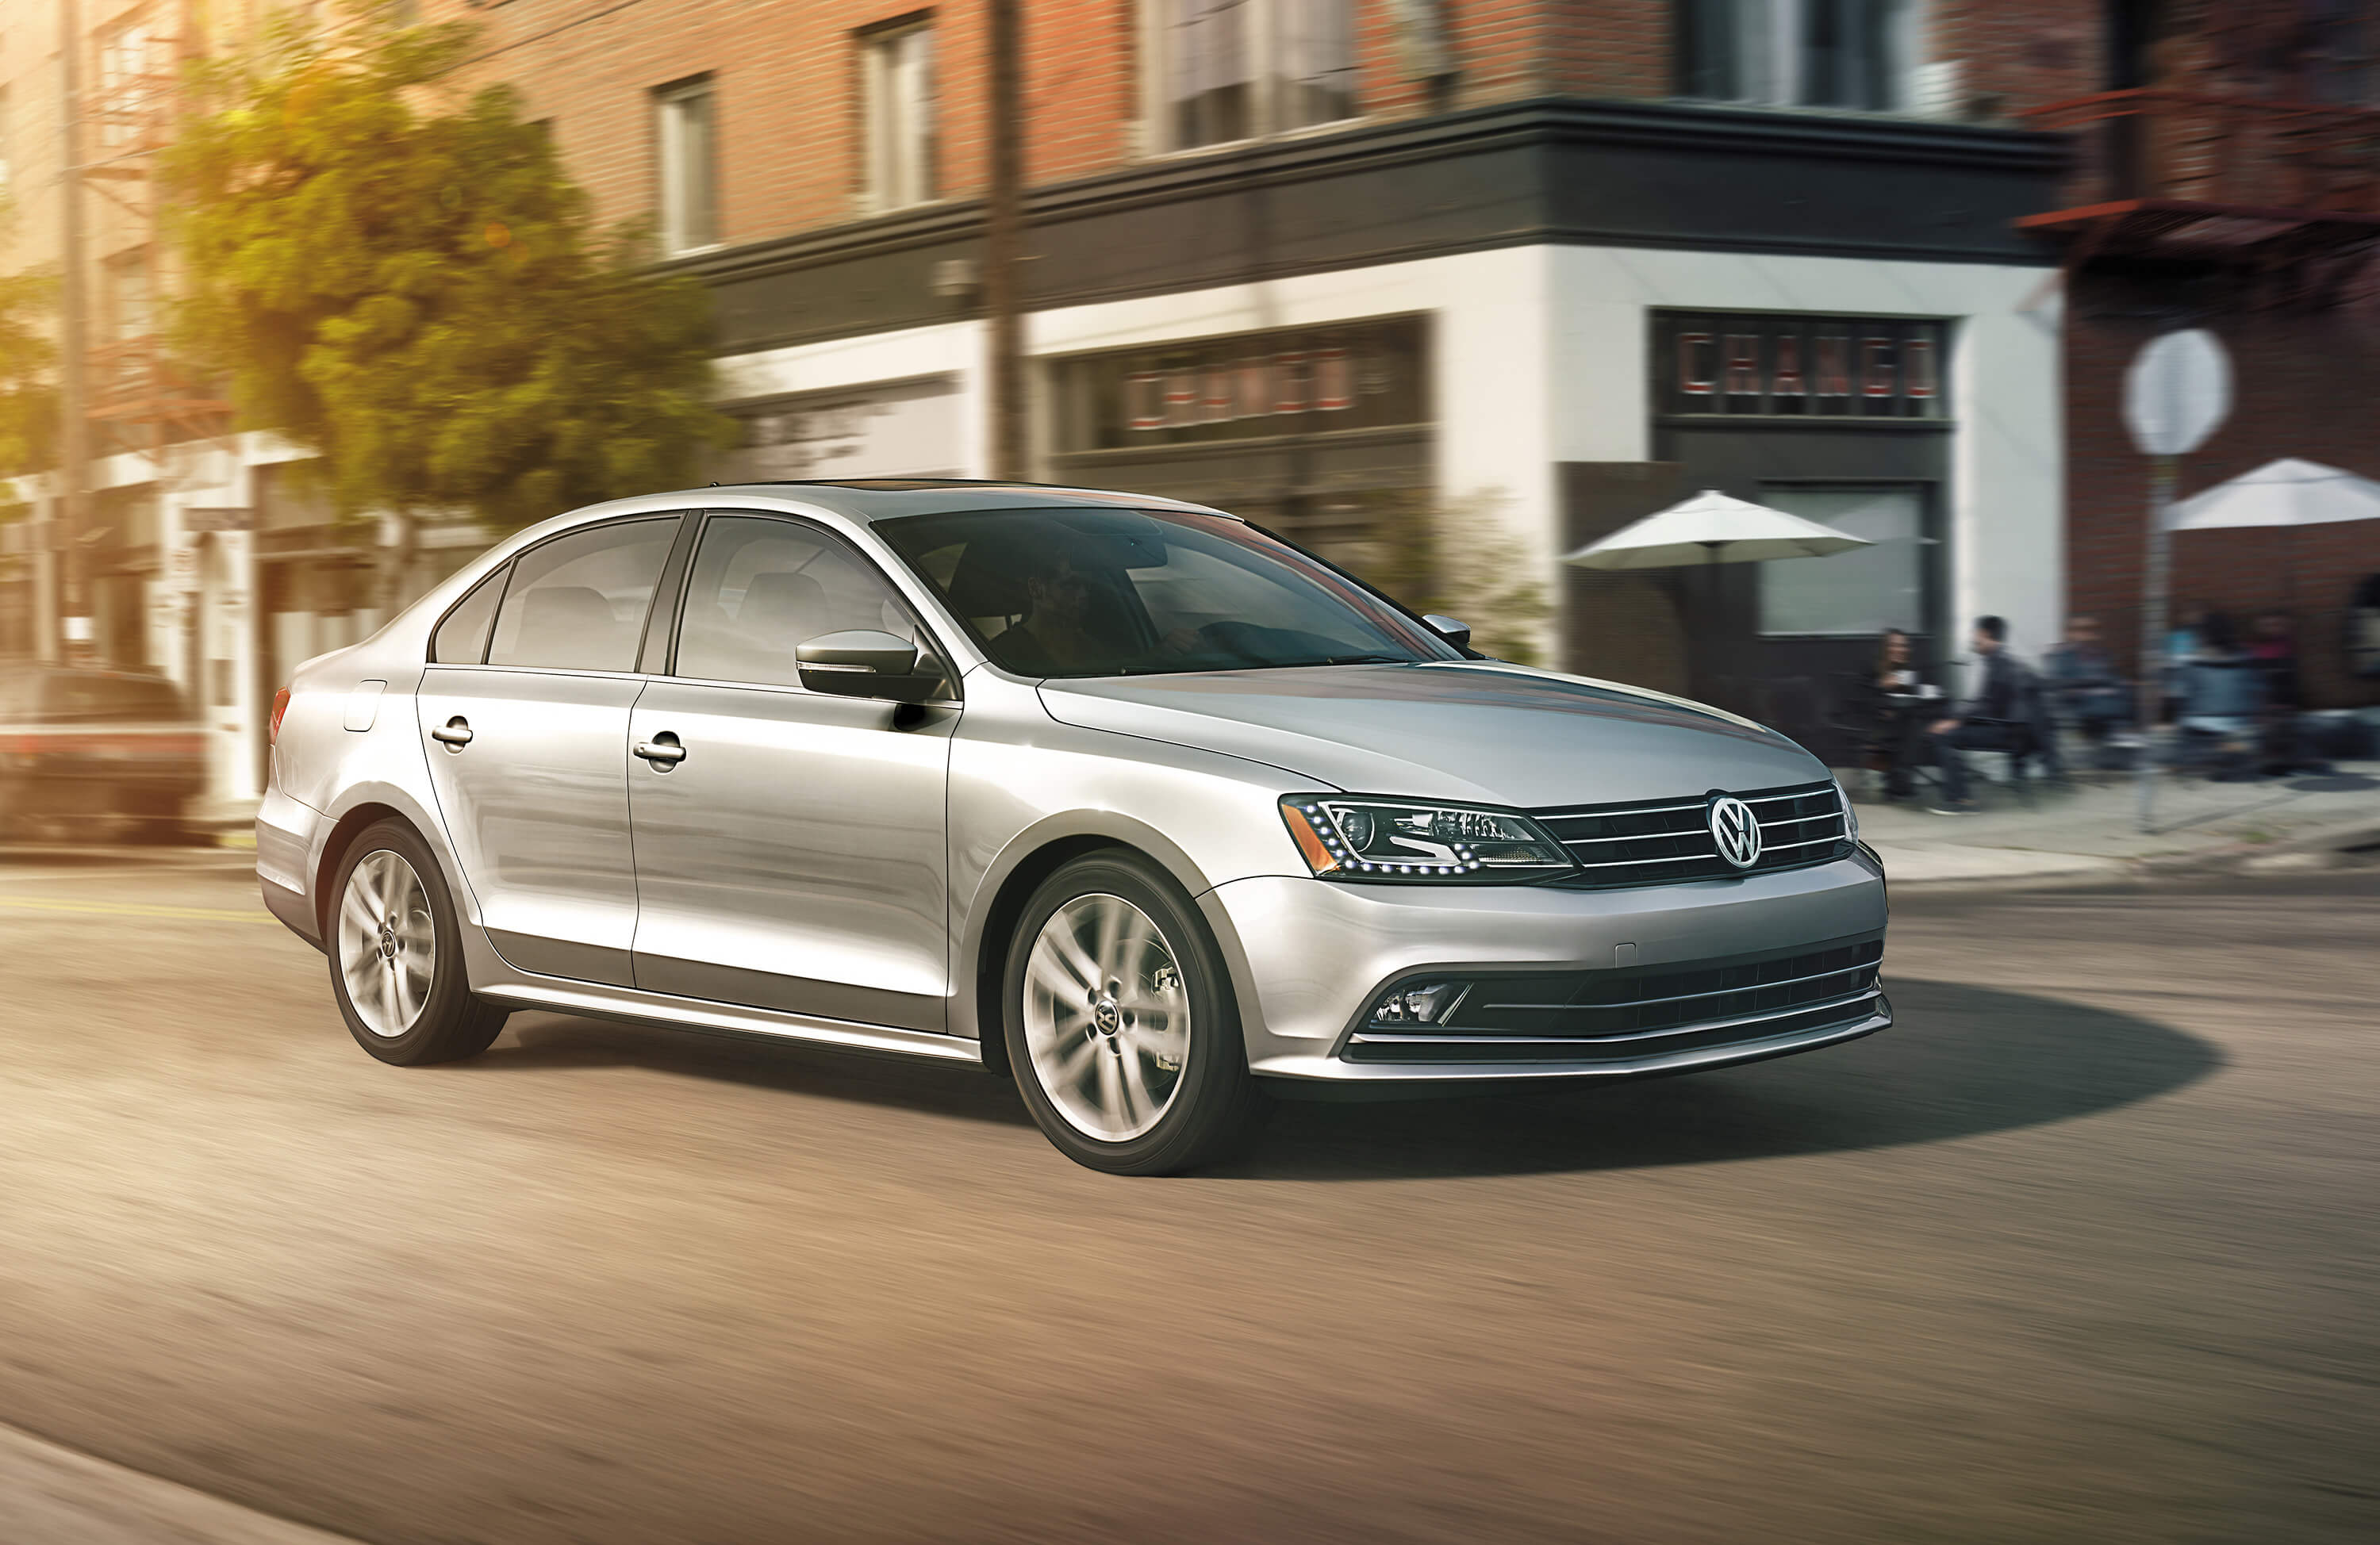 lease volkswagen nuys ca for deals passat special original new vw sale van california offers finance golf